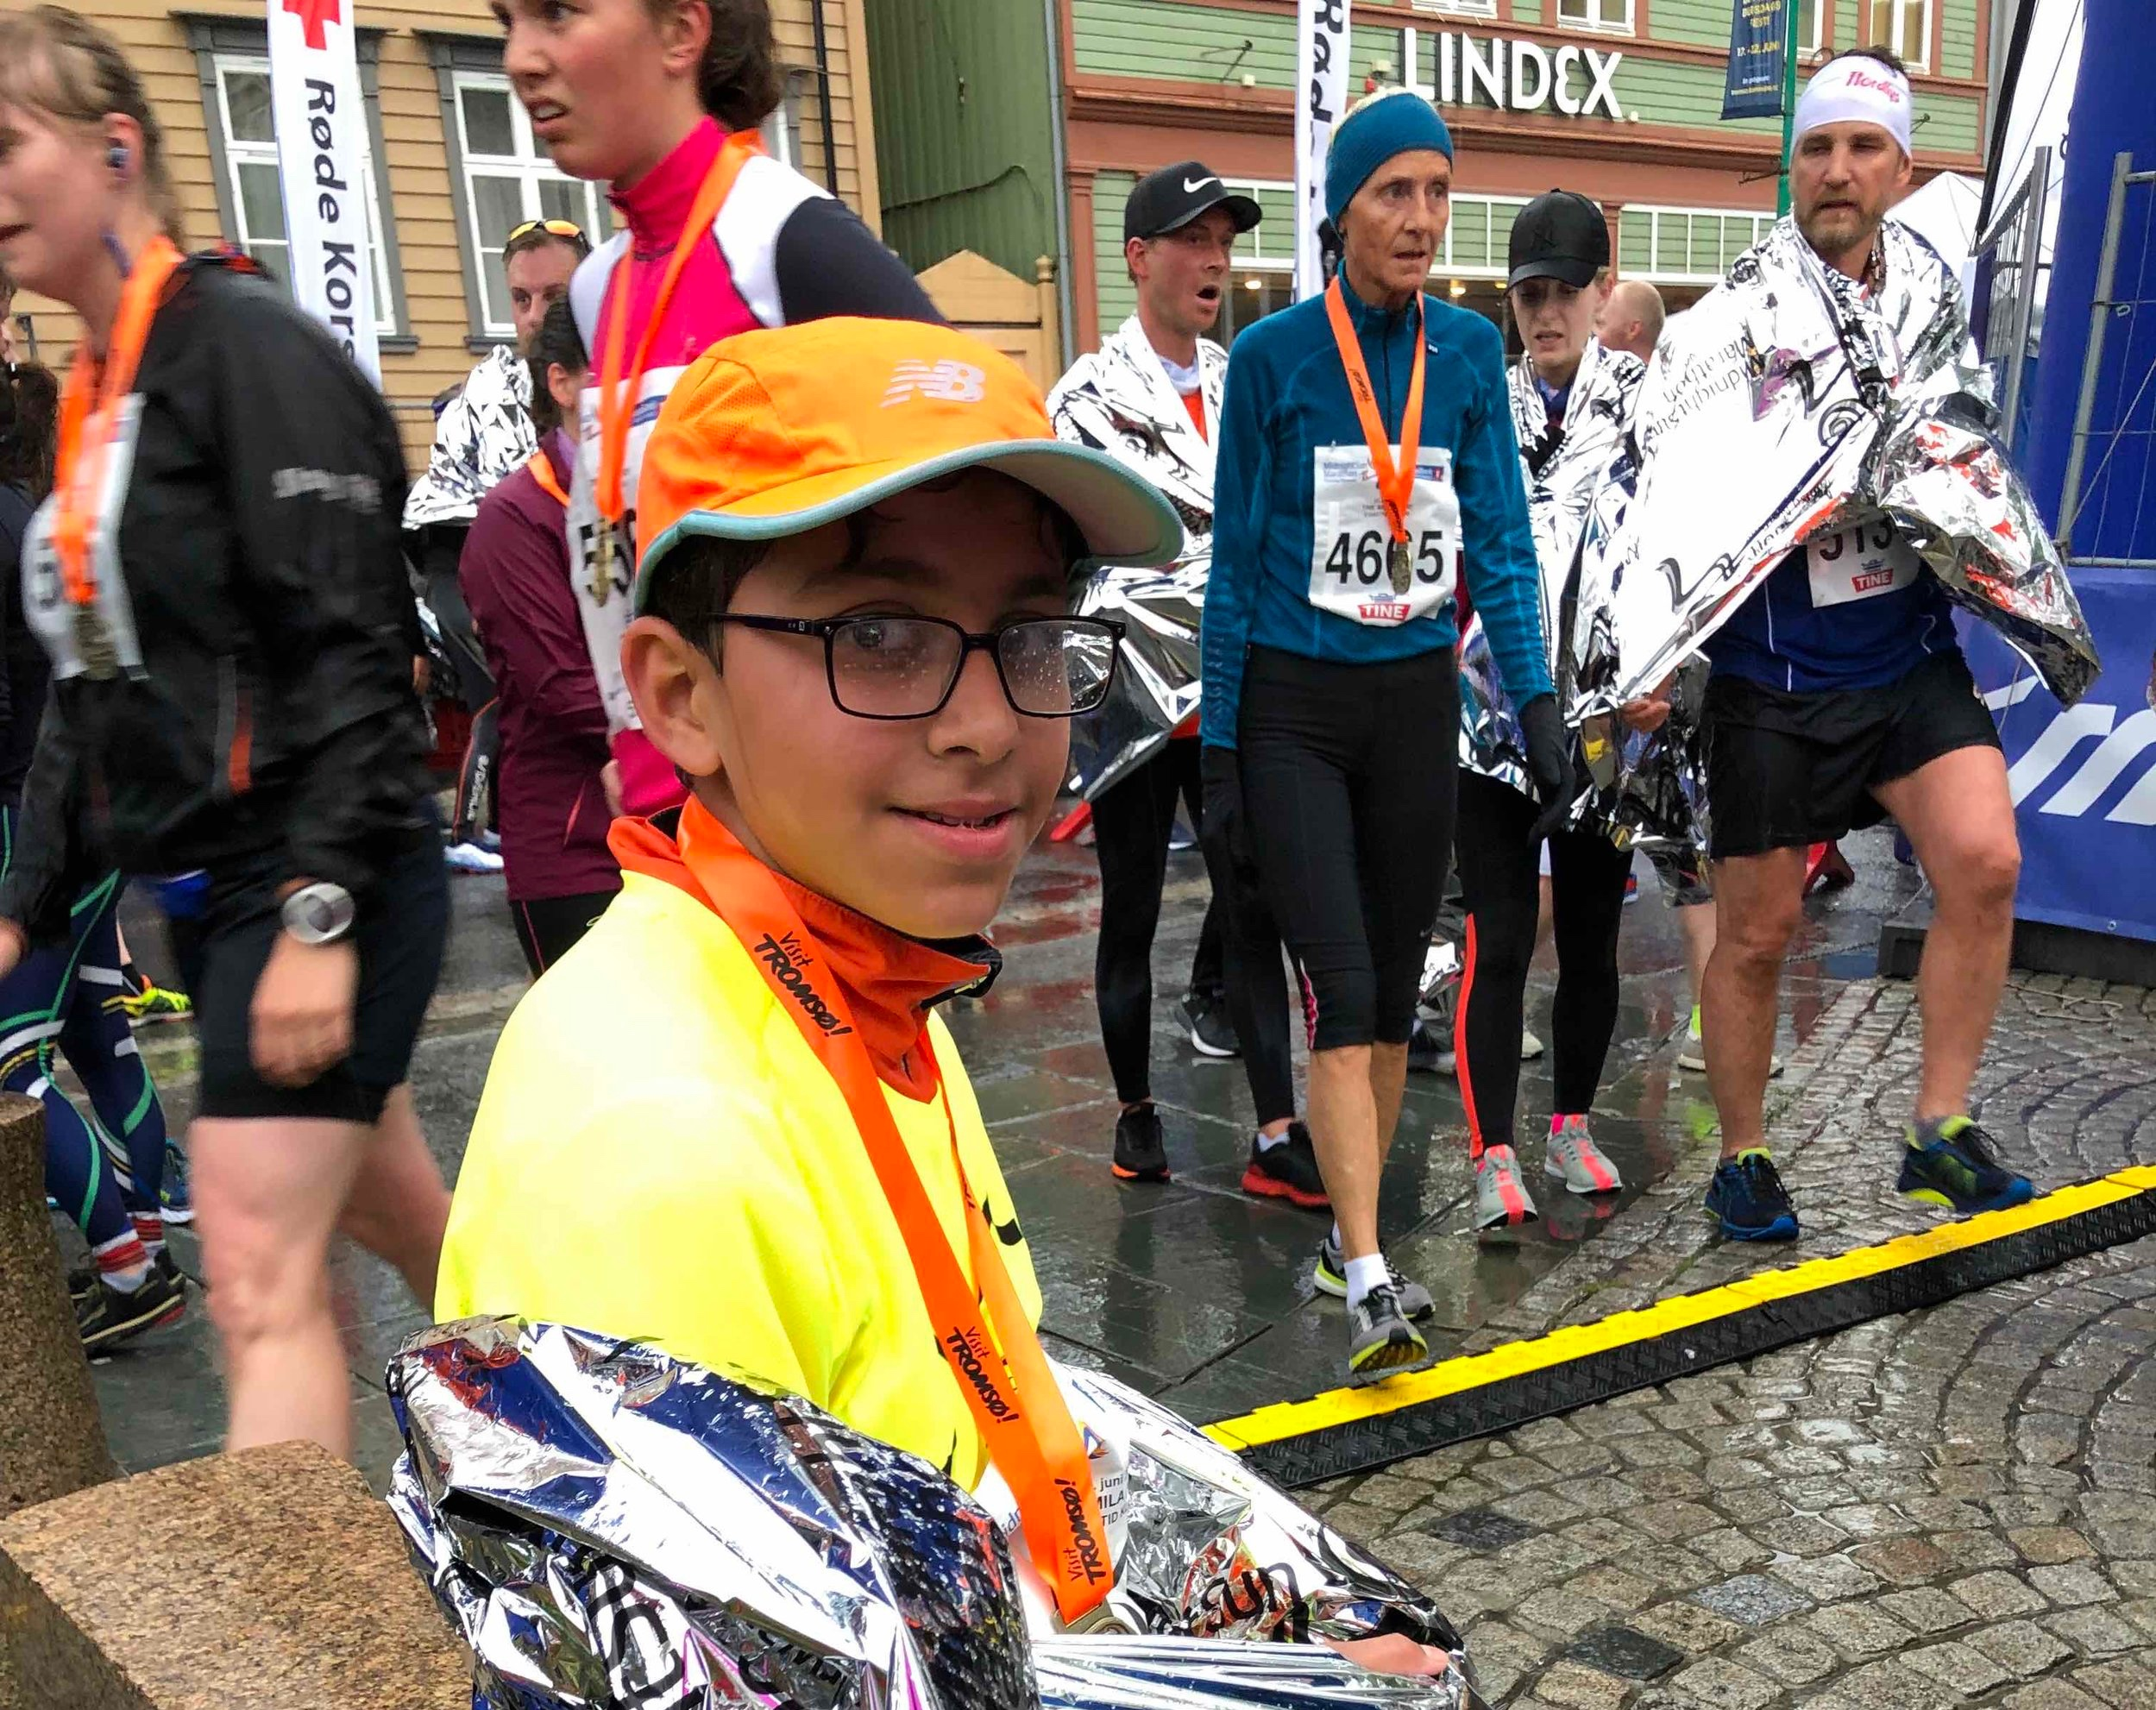 Viren after the finish. The dude was disappointed that he managed to only do 50 min.